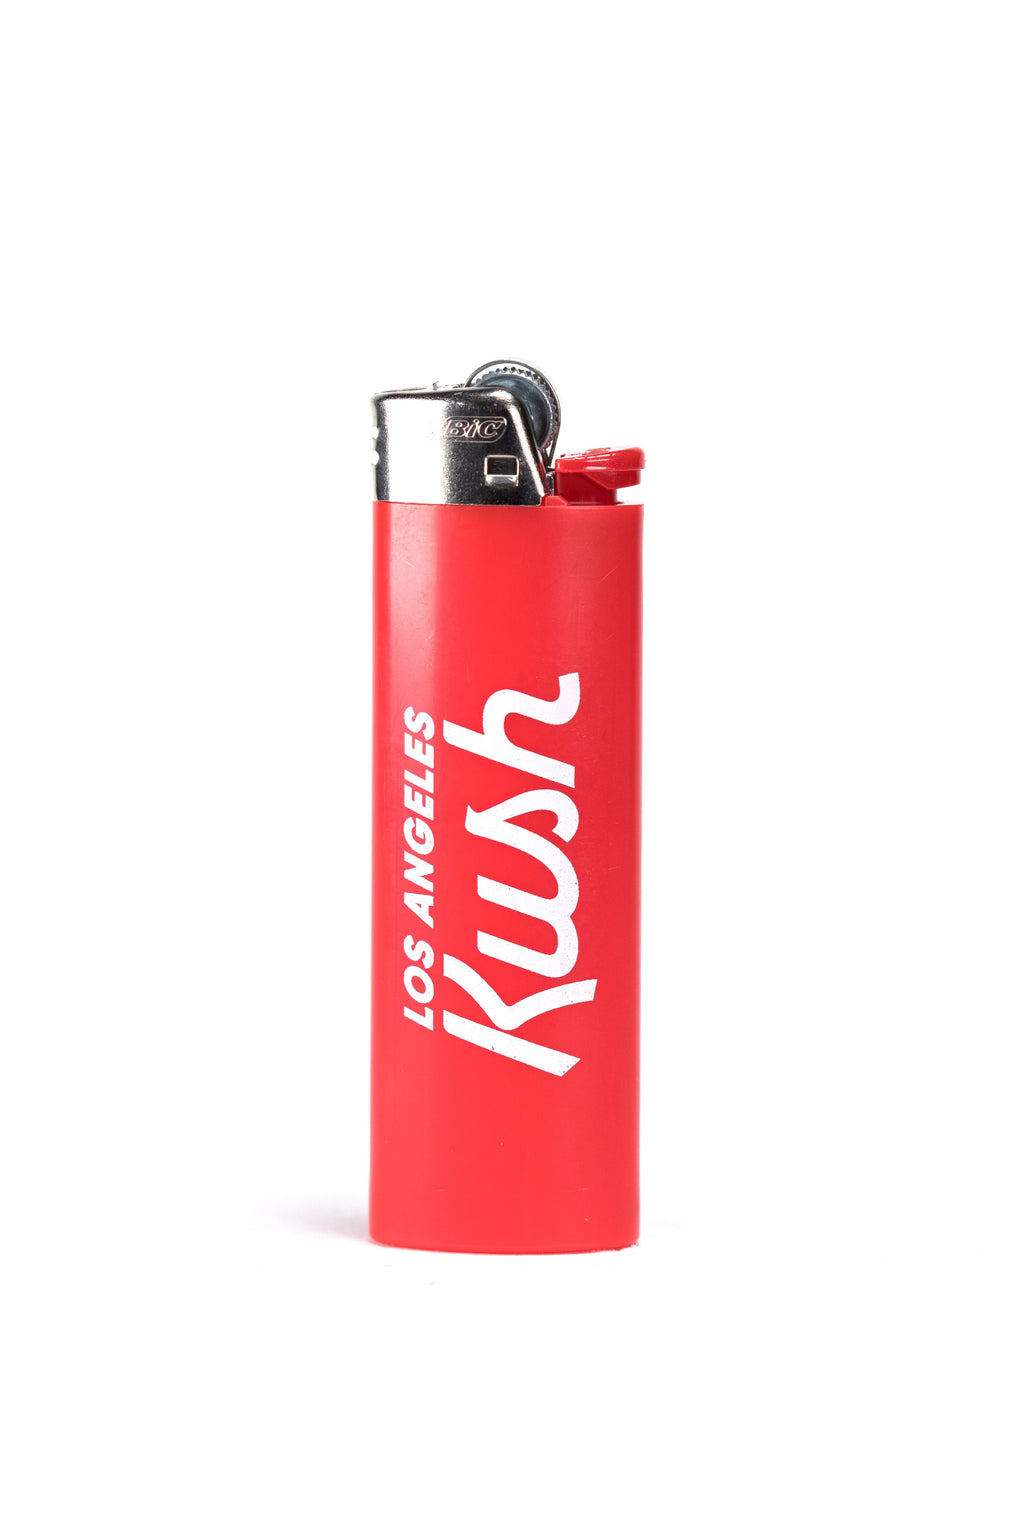 LA Kush OG Lighter - Red/White